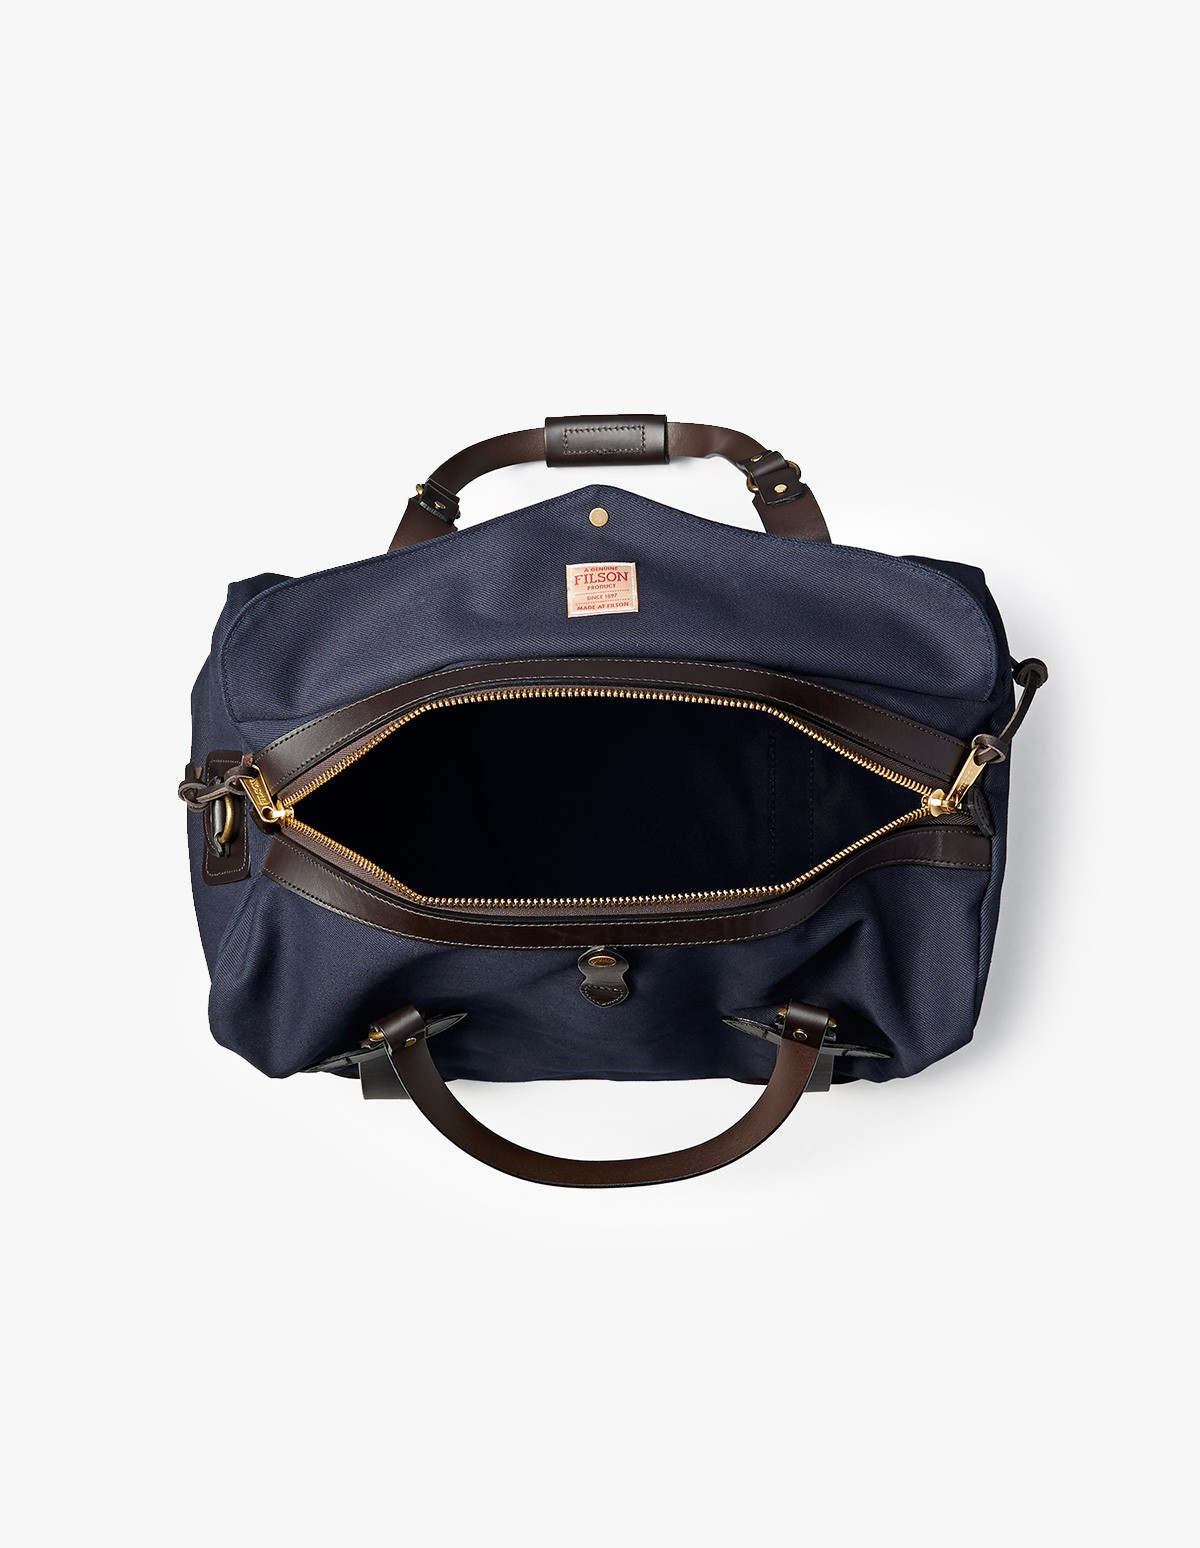 Filson Medium Duffle Bag in Navy